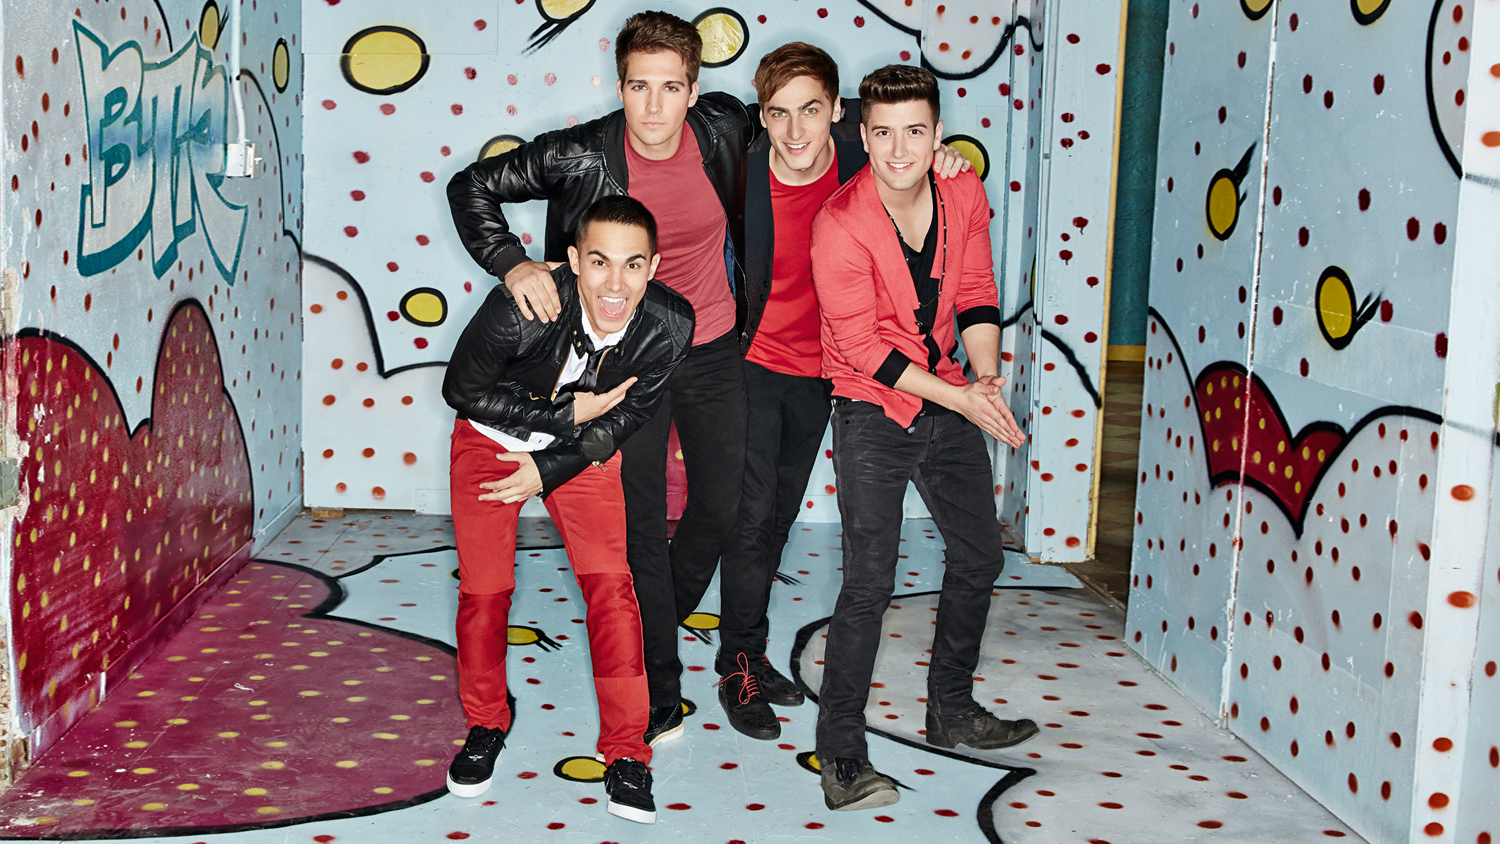 big-time-rush-1500x844.jpg